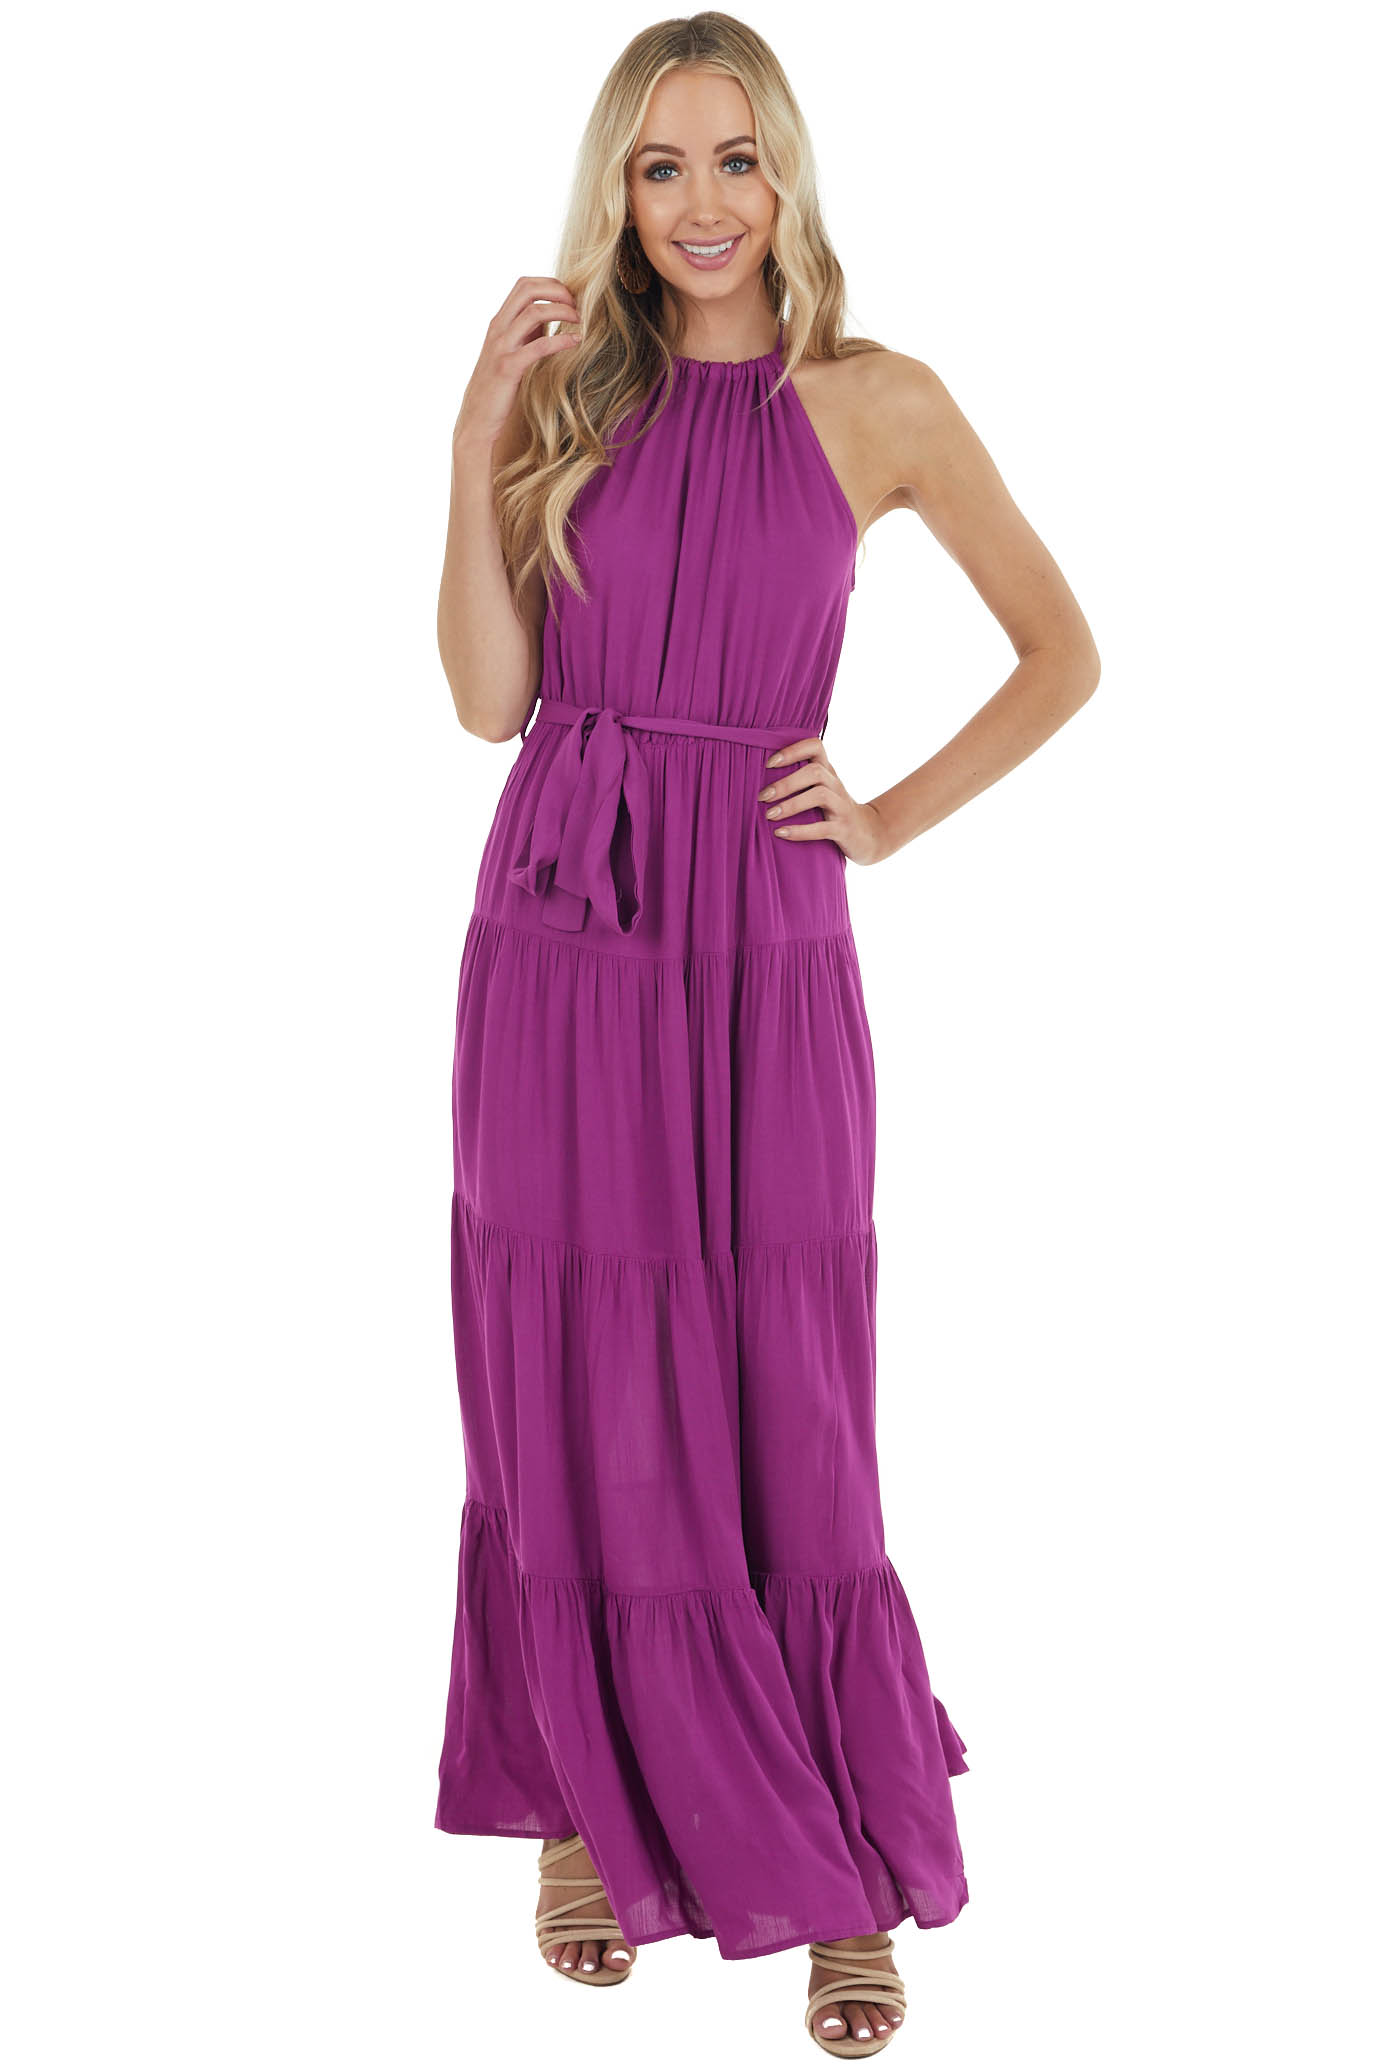 Light Plum Halter Neck Tiered Maxi Dress with Tie Detail